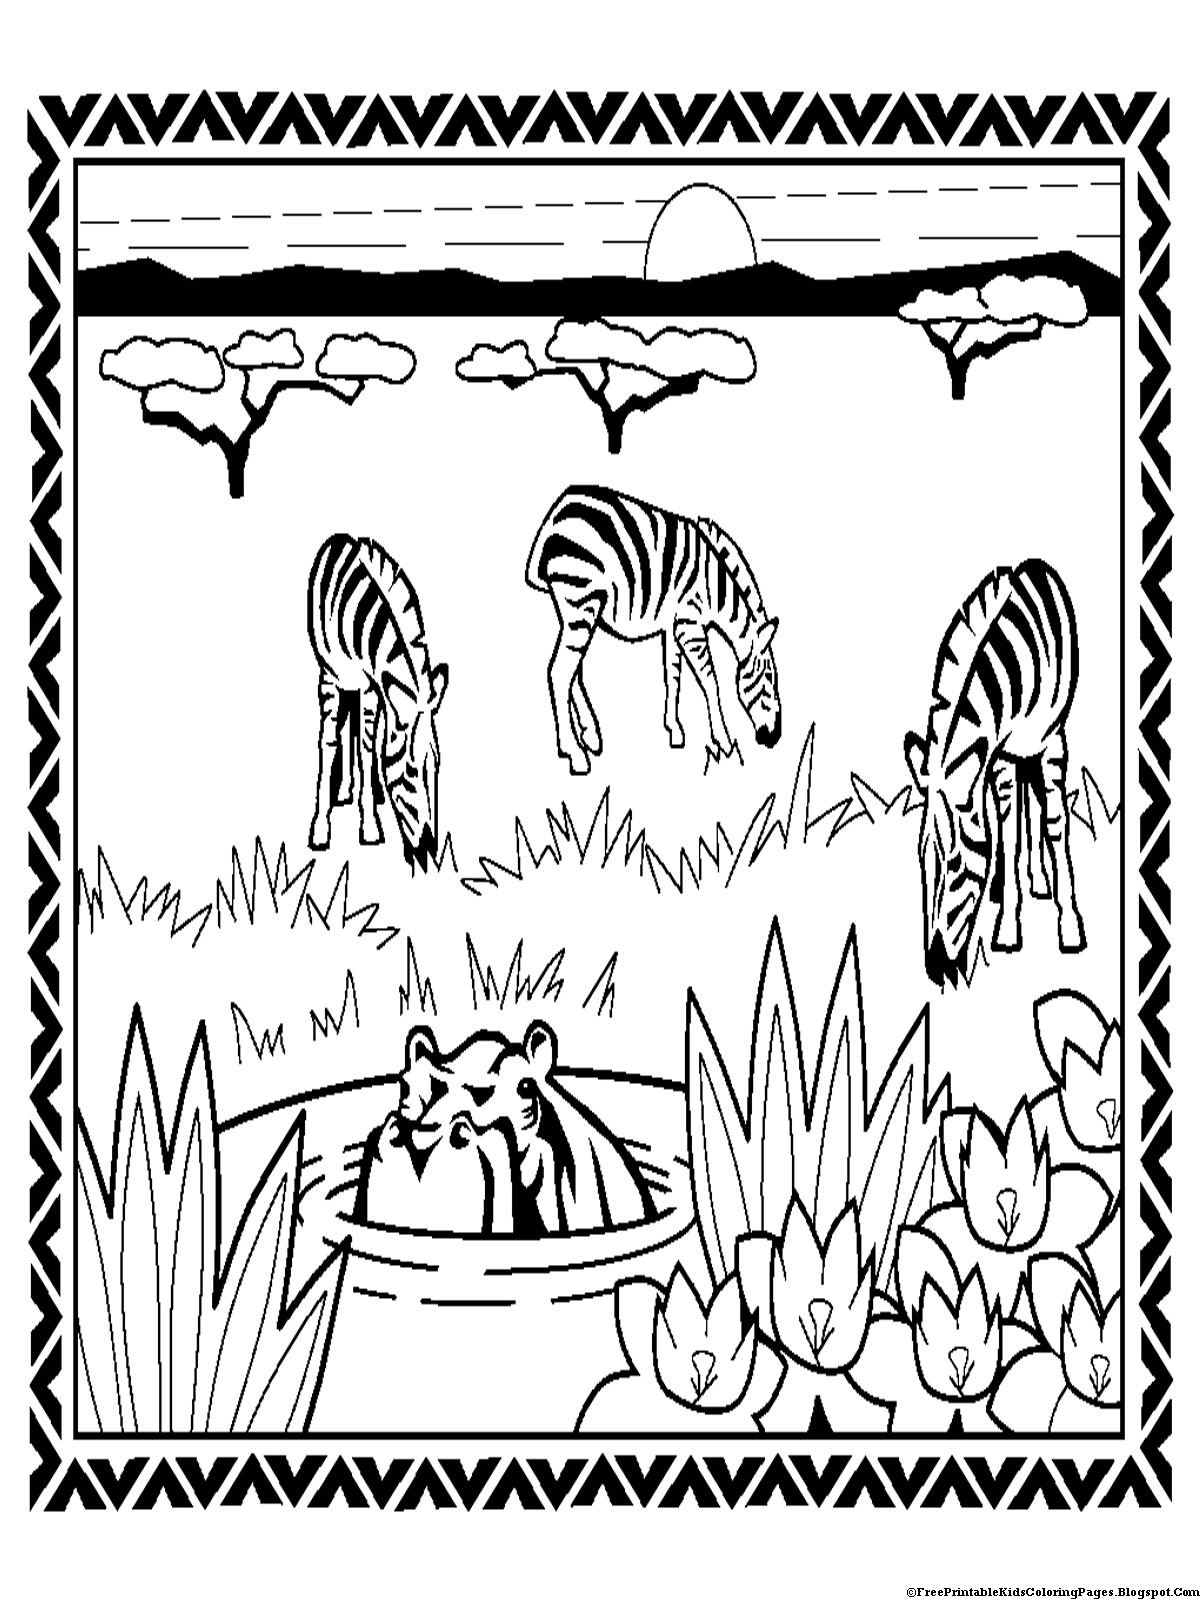 zebra colouring pages to print top 20 free printable zebra coloring pages online colouring to print zebra pages